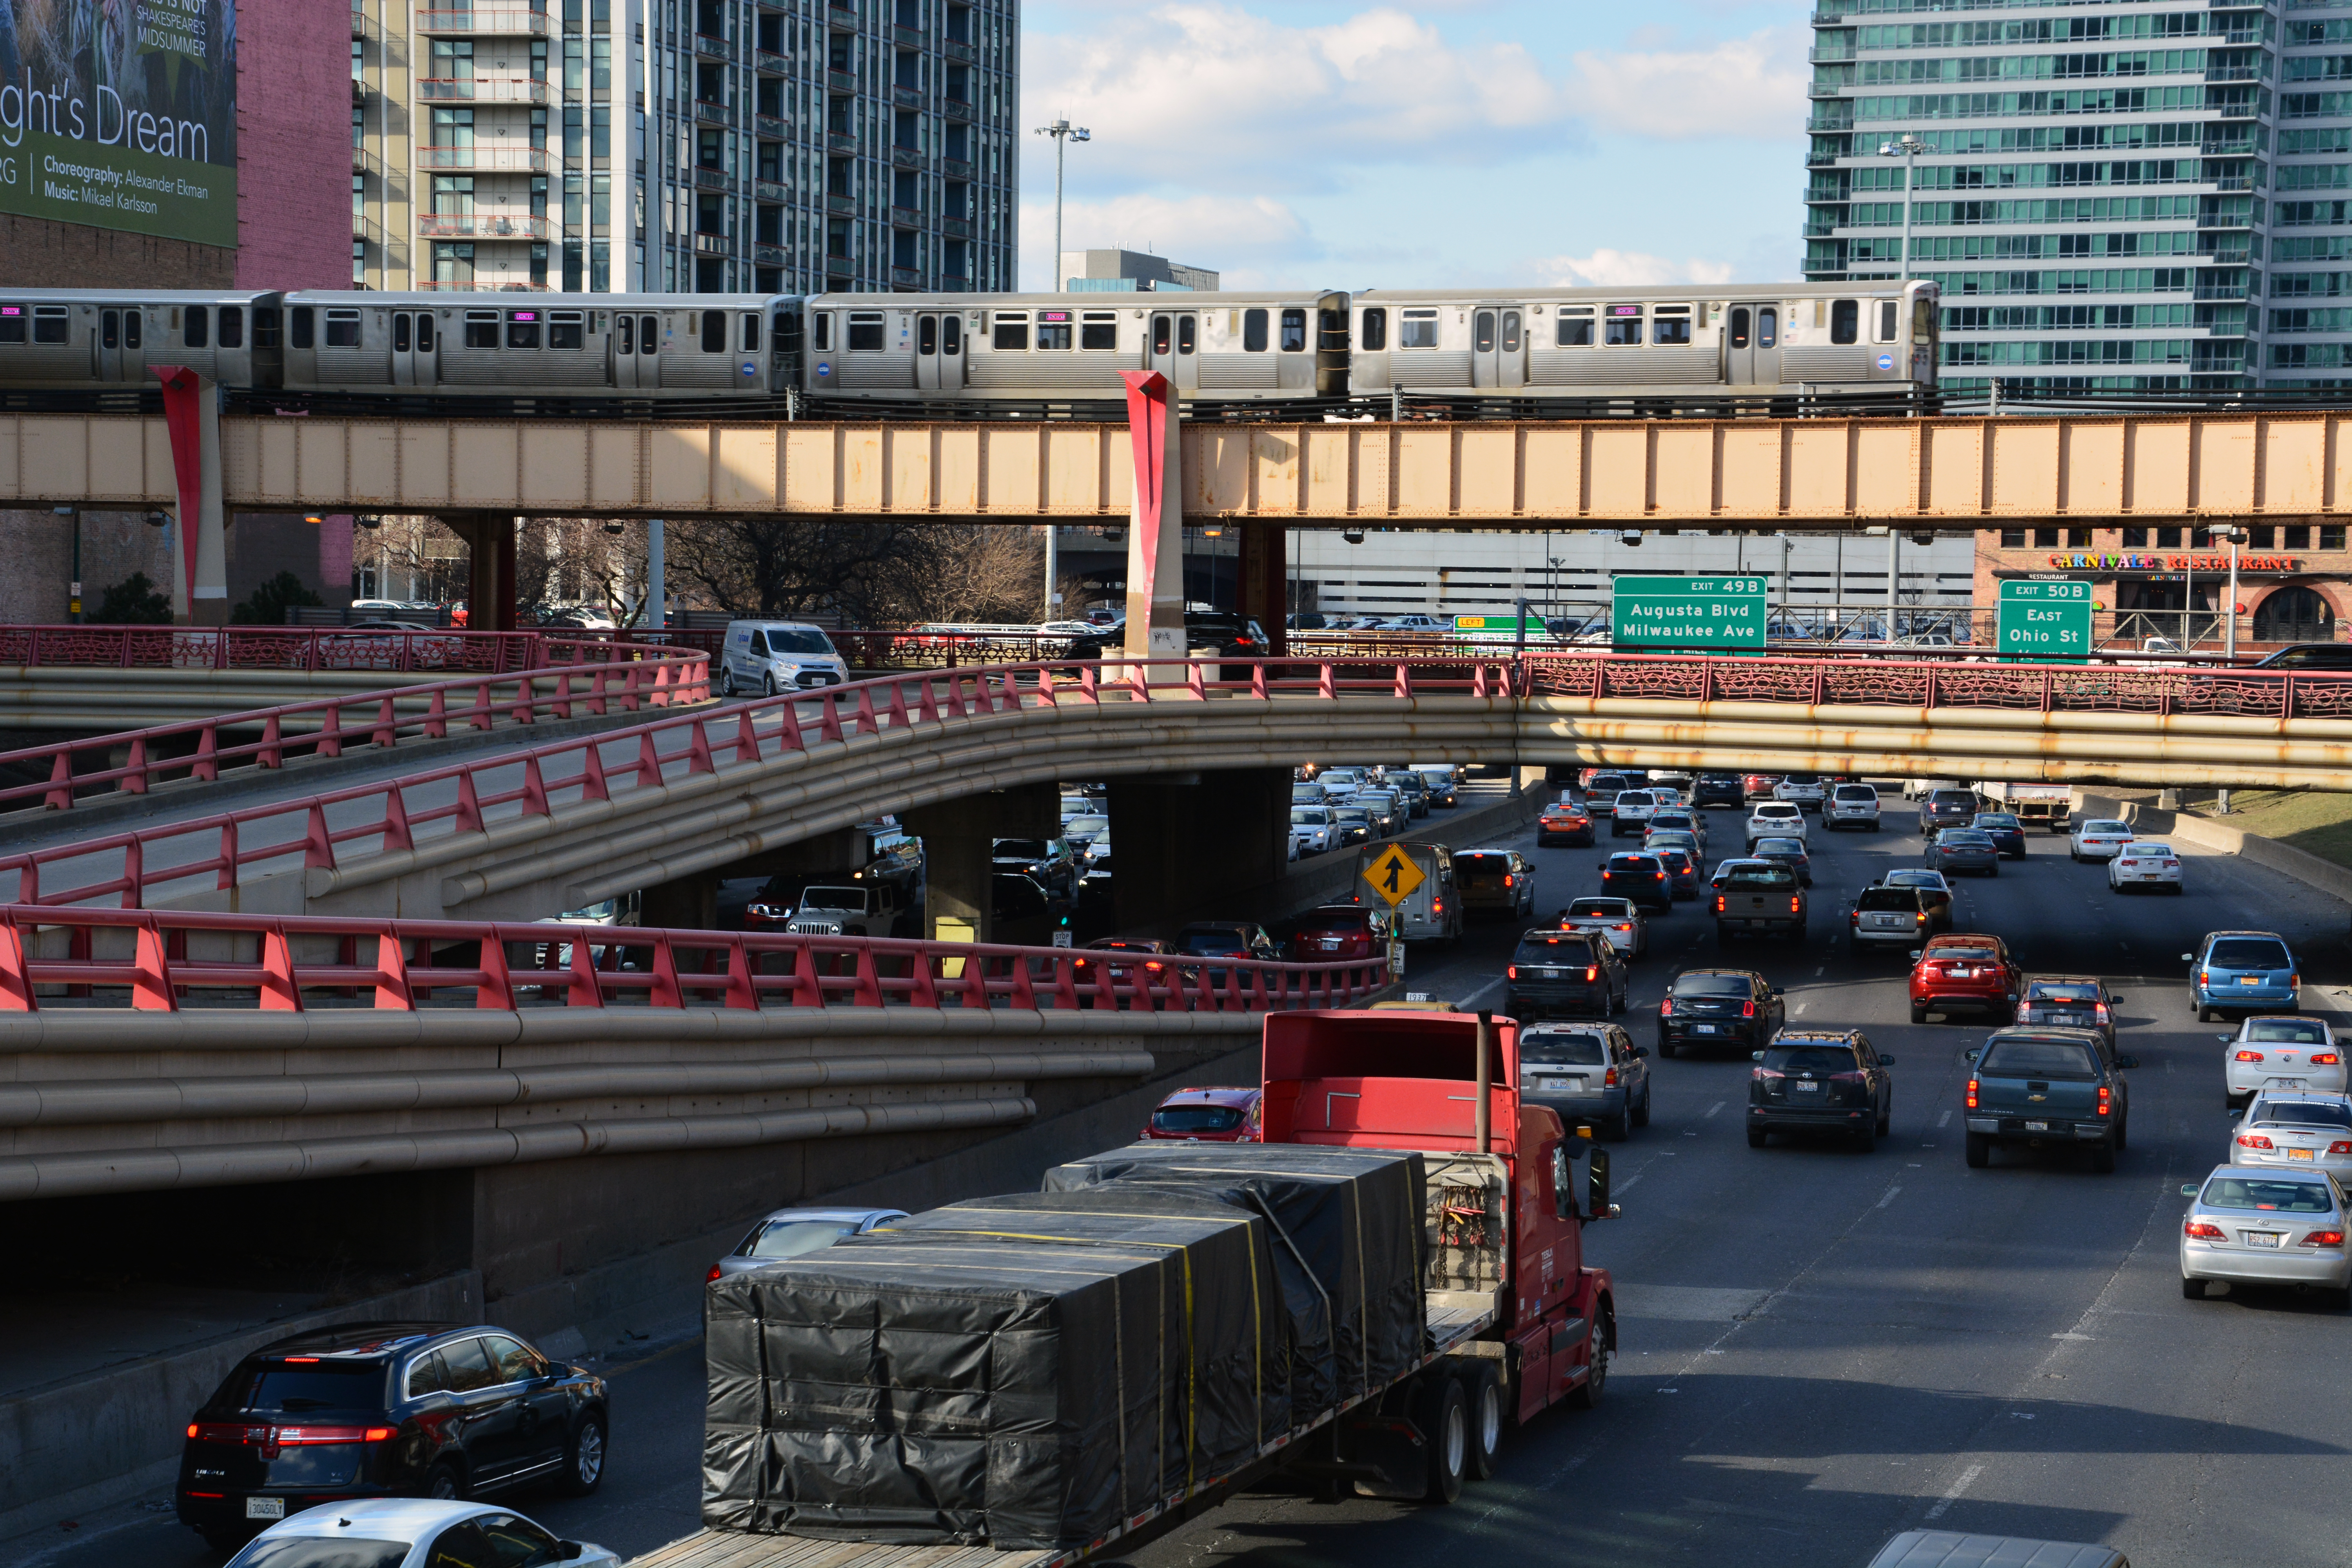 A view of expressway ramps and traffic on the road. There is an L train passing over the roads.